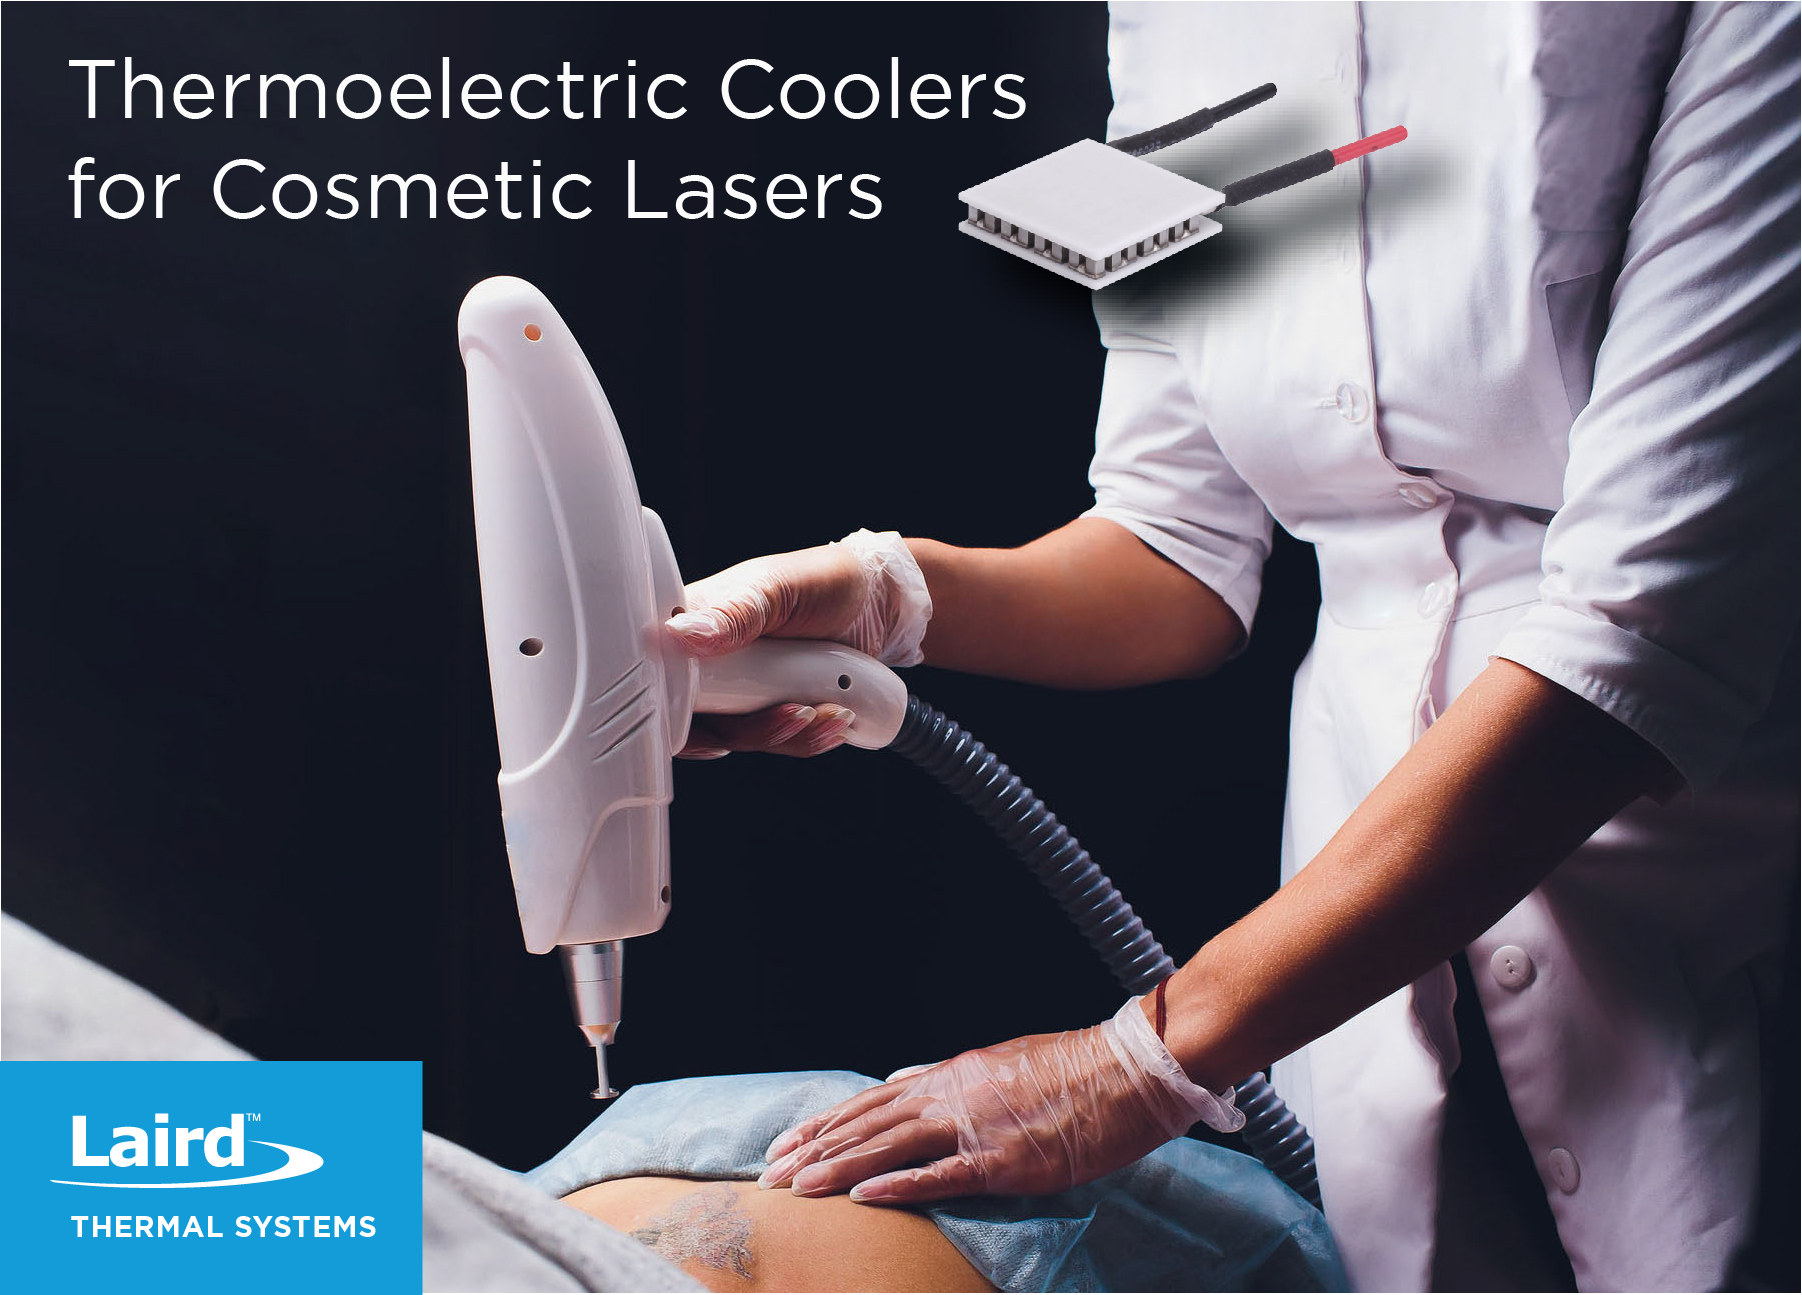 Thermoelectric-coolers-for-cosmetic-lasers